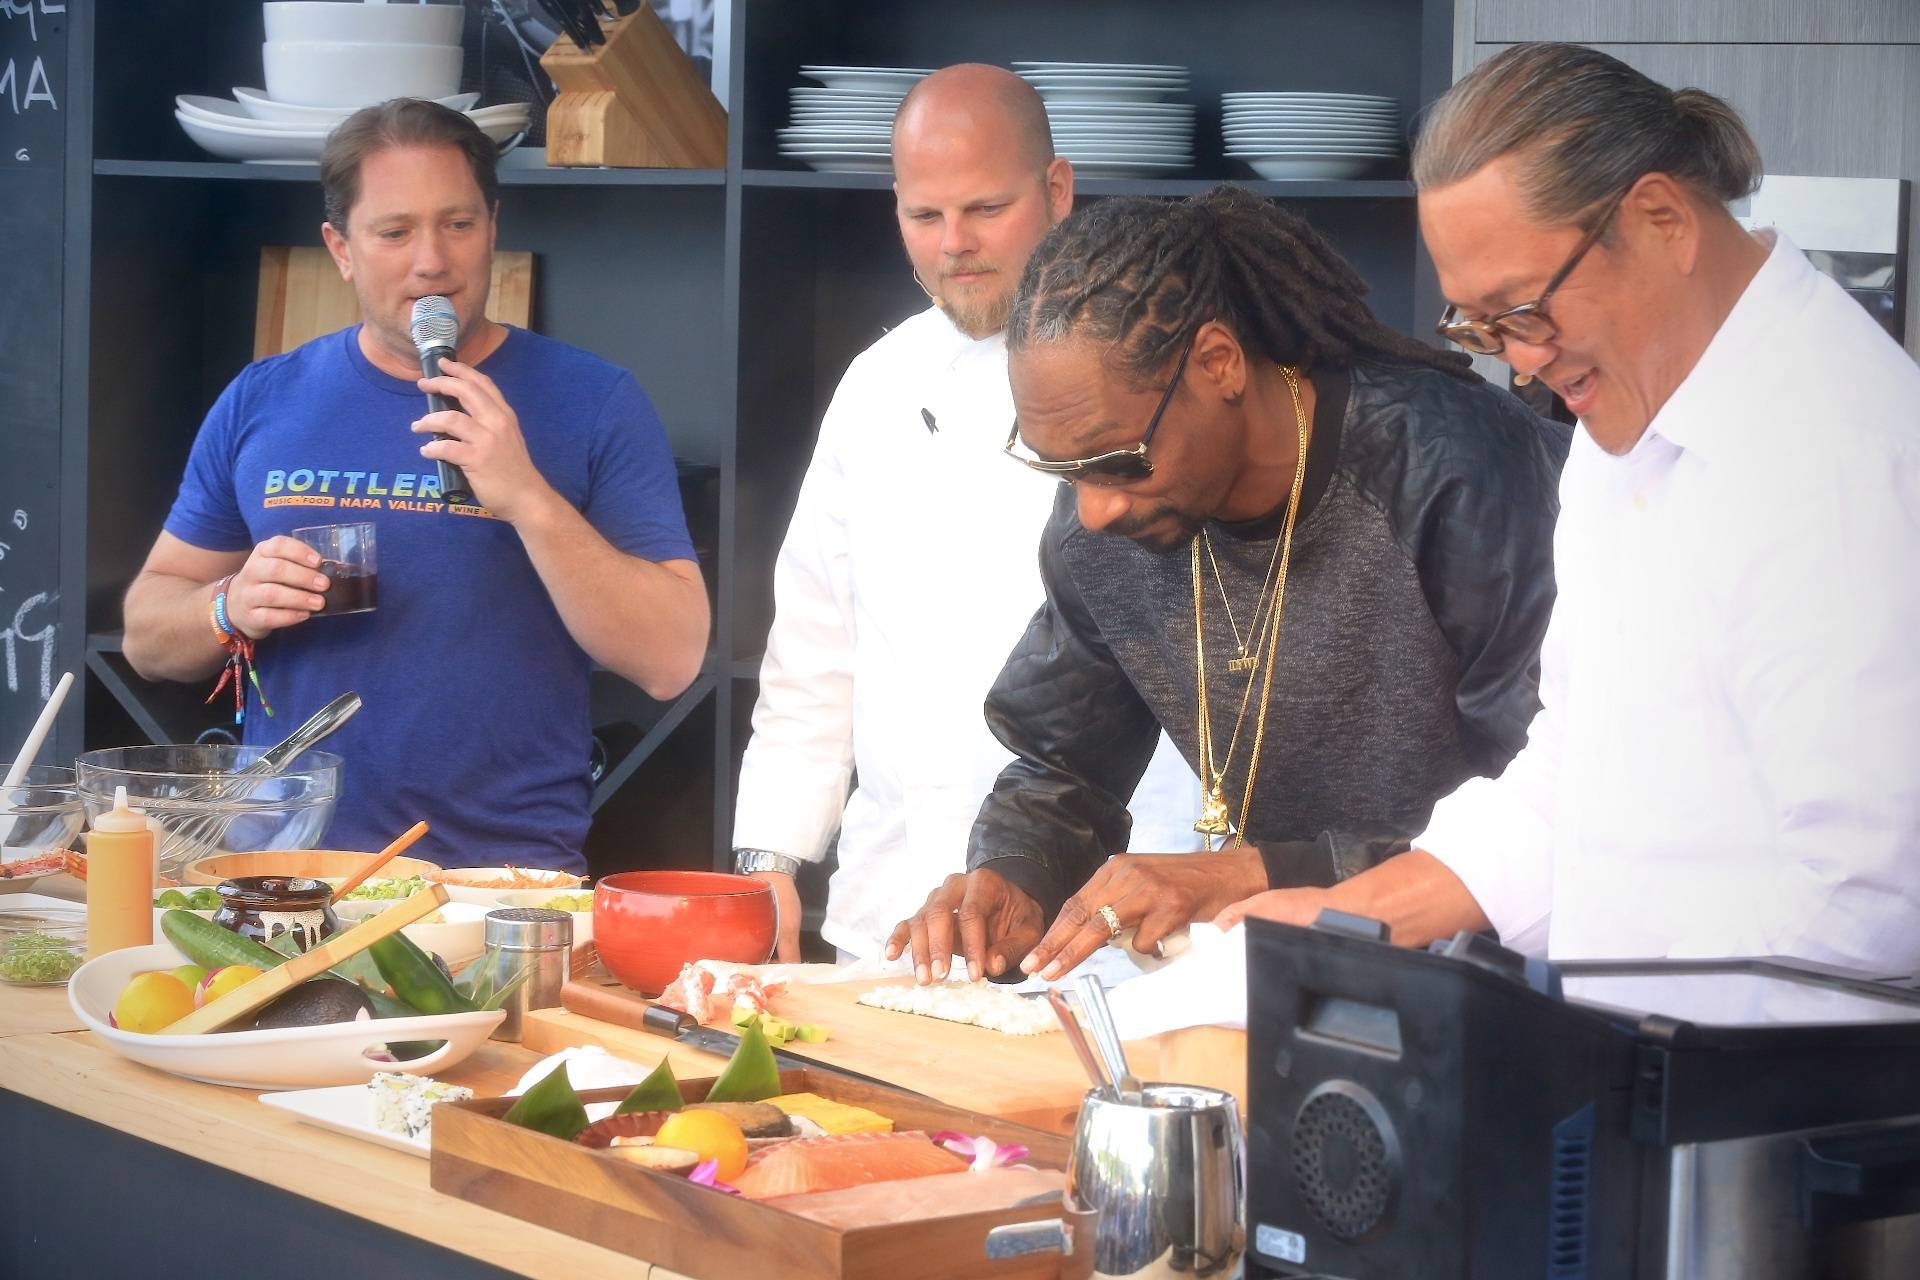 Chef morimoto teaches snoop dogg how to really roll at bottlerock snoop dogg and chef morimoto make sushi kristyandbryce Gallery